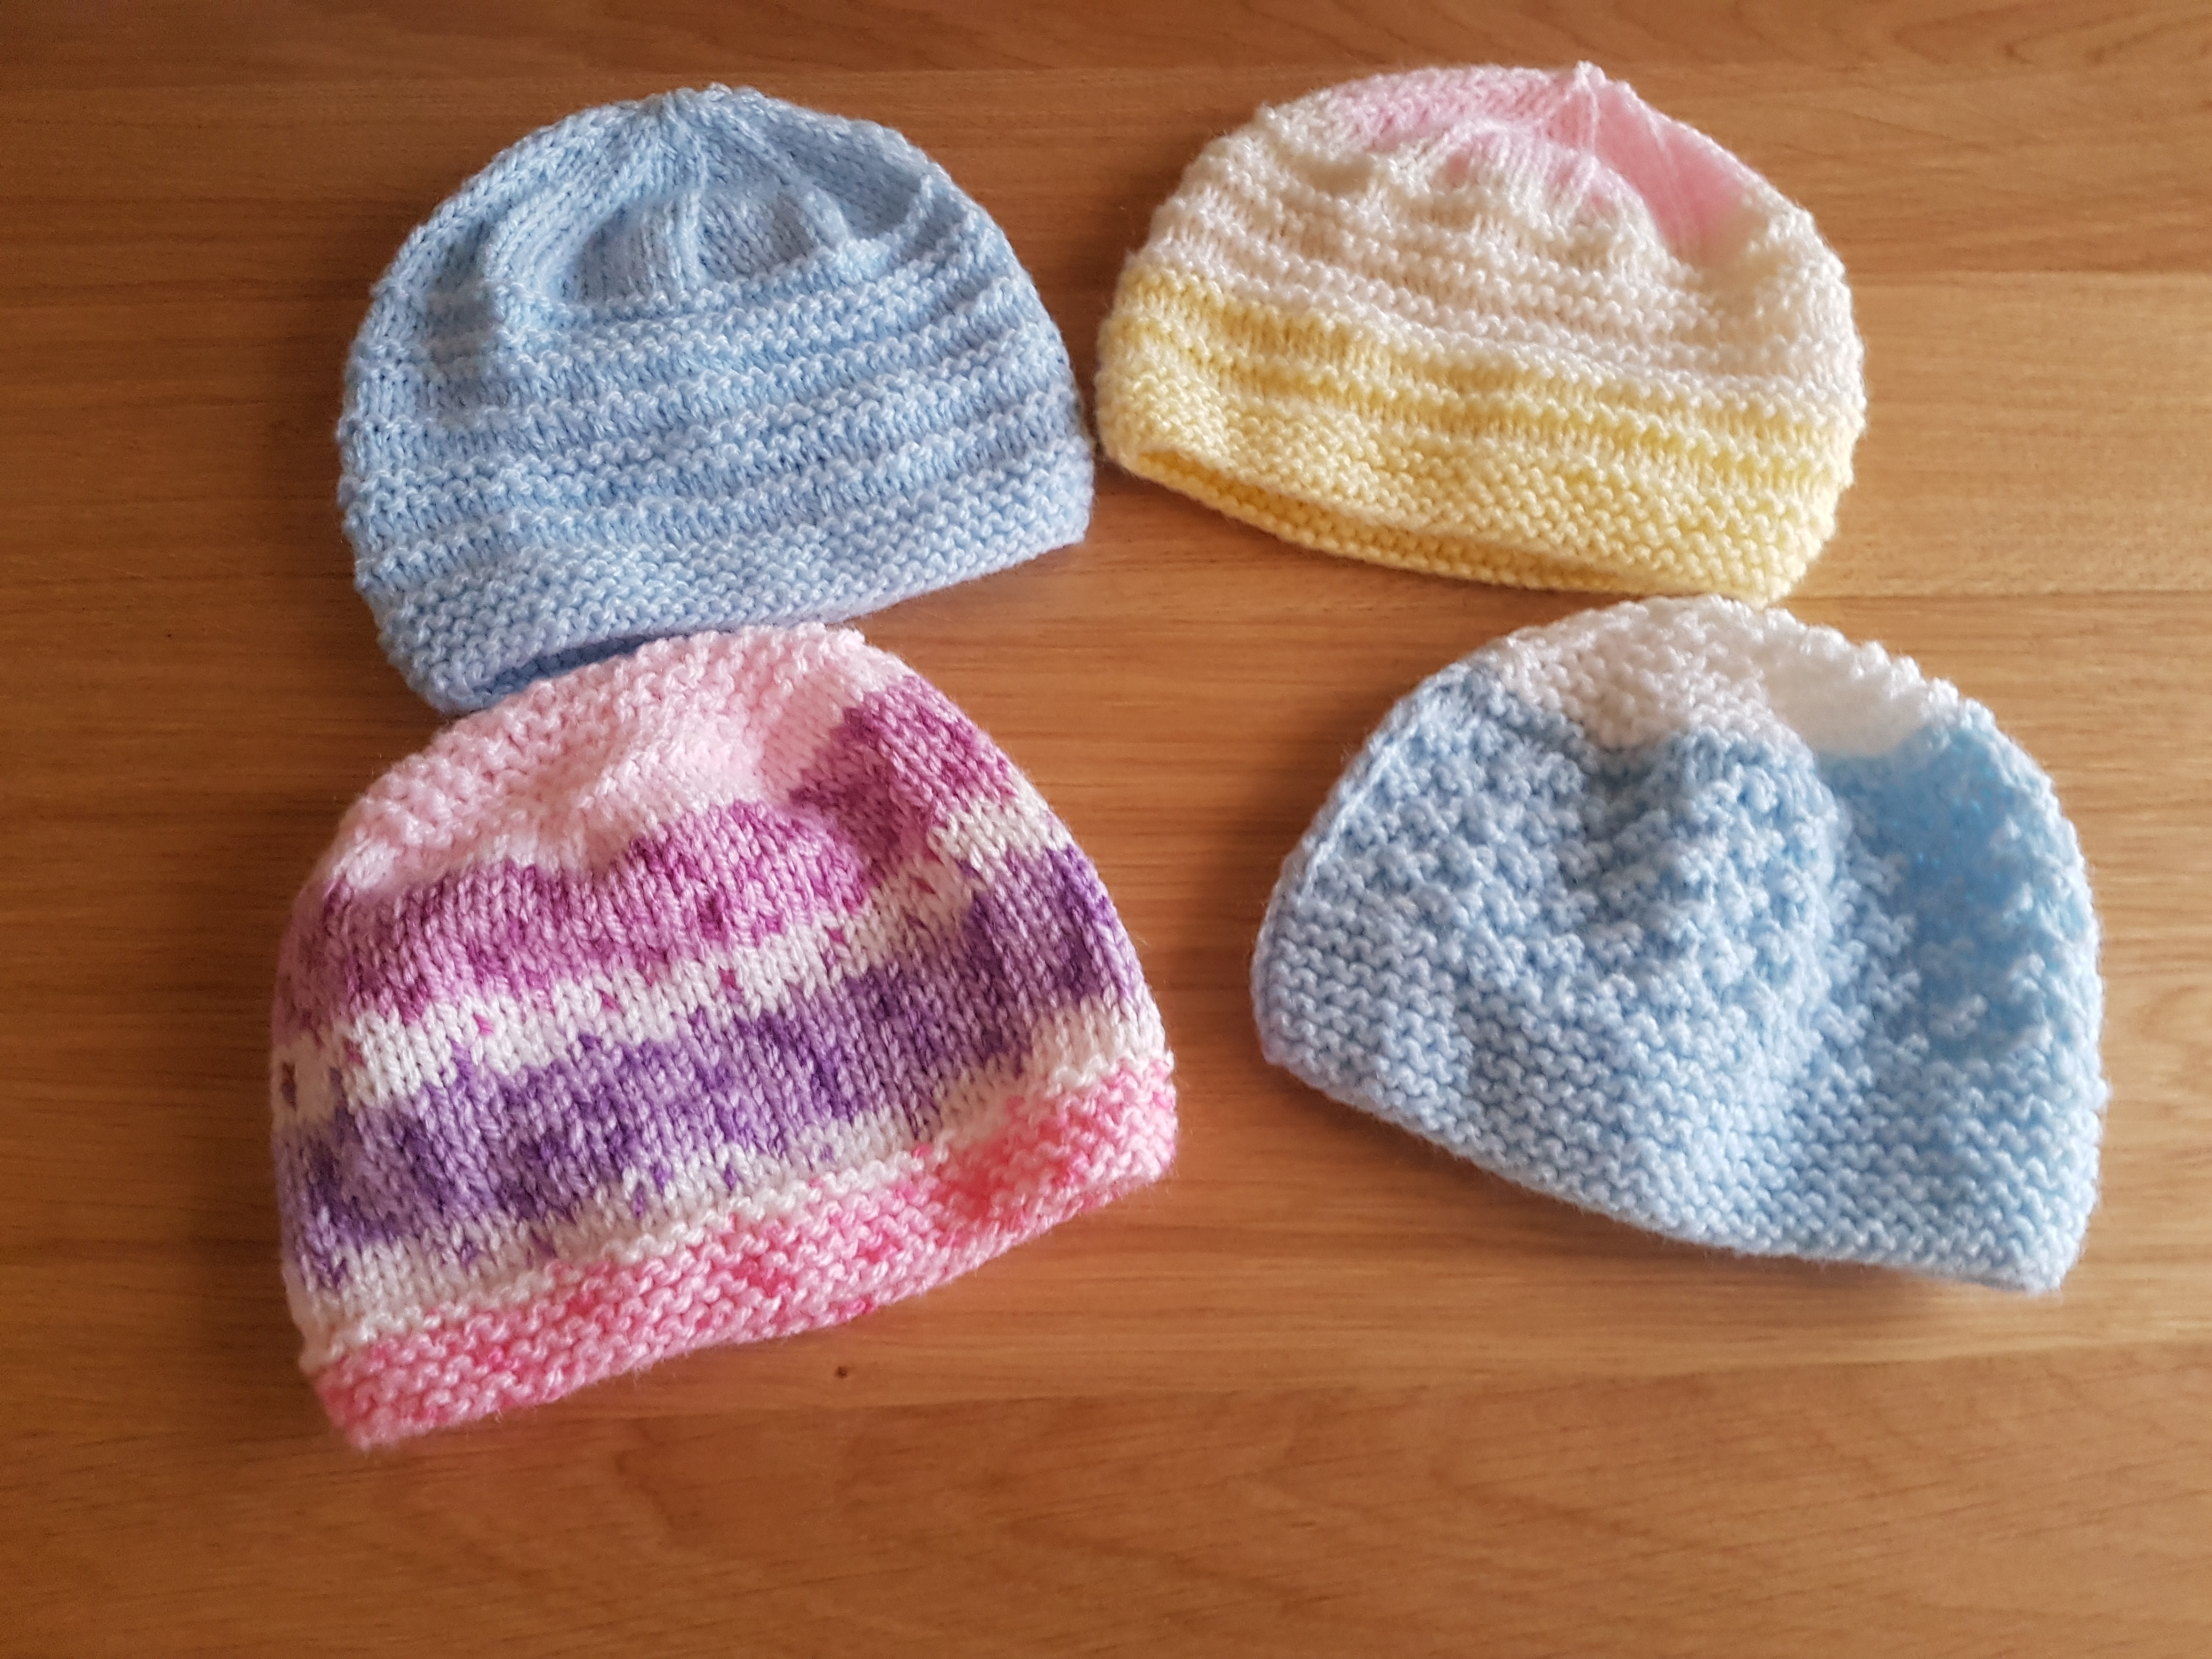 Knitting Unit Project : Beanie hat for local maternity unit knitting project by